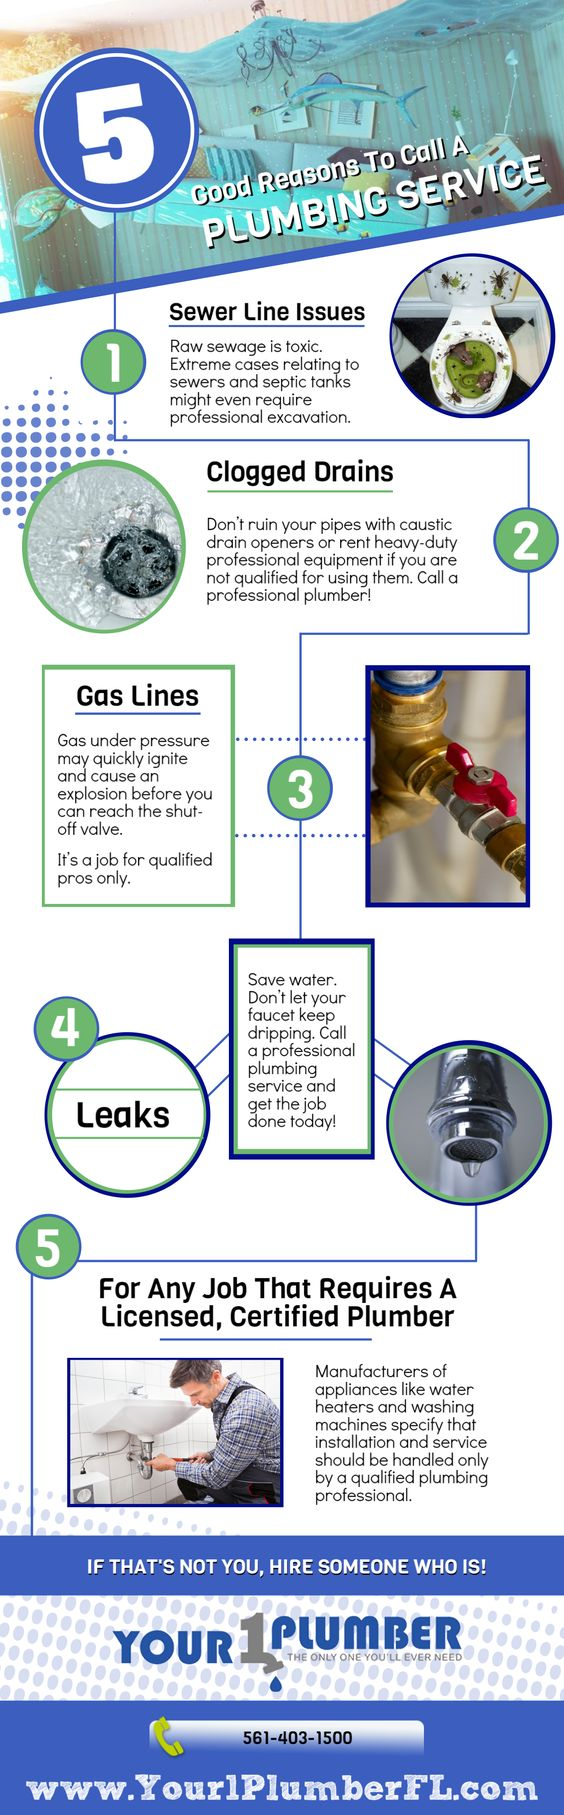 Your plumber fl yourplumberfl on pinterest